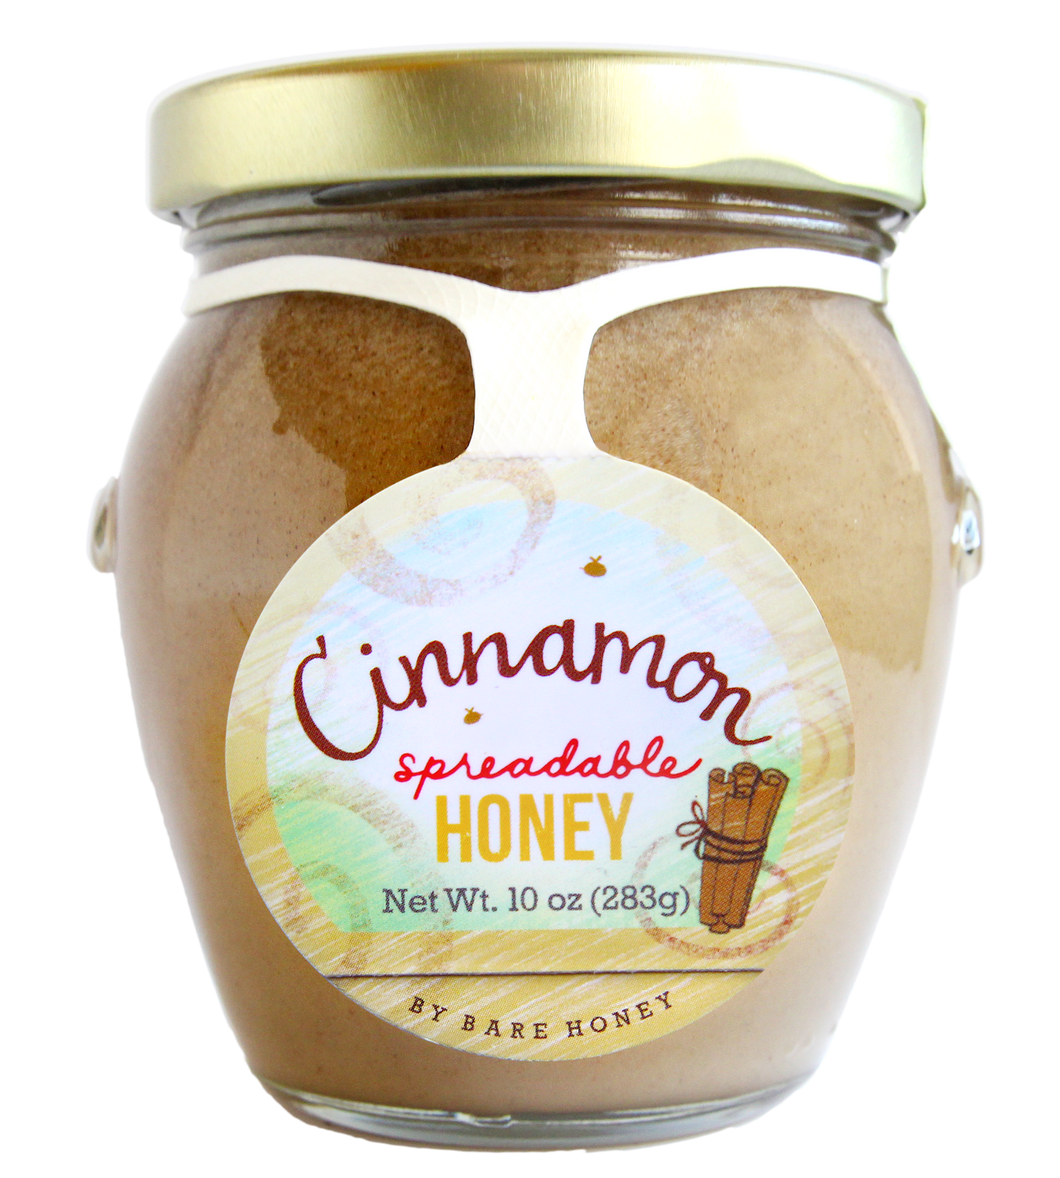 Cinnamon Spreadable Honey